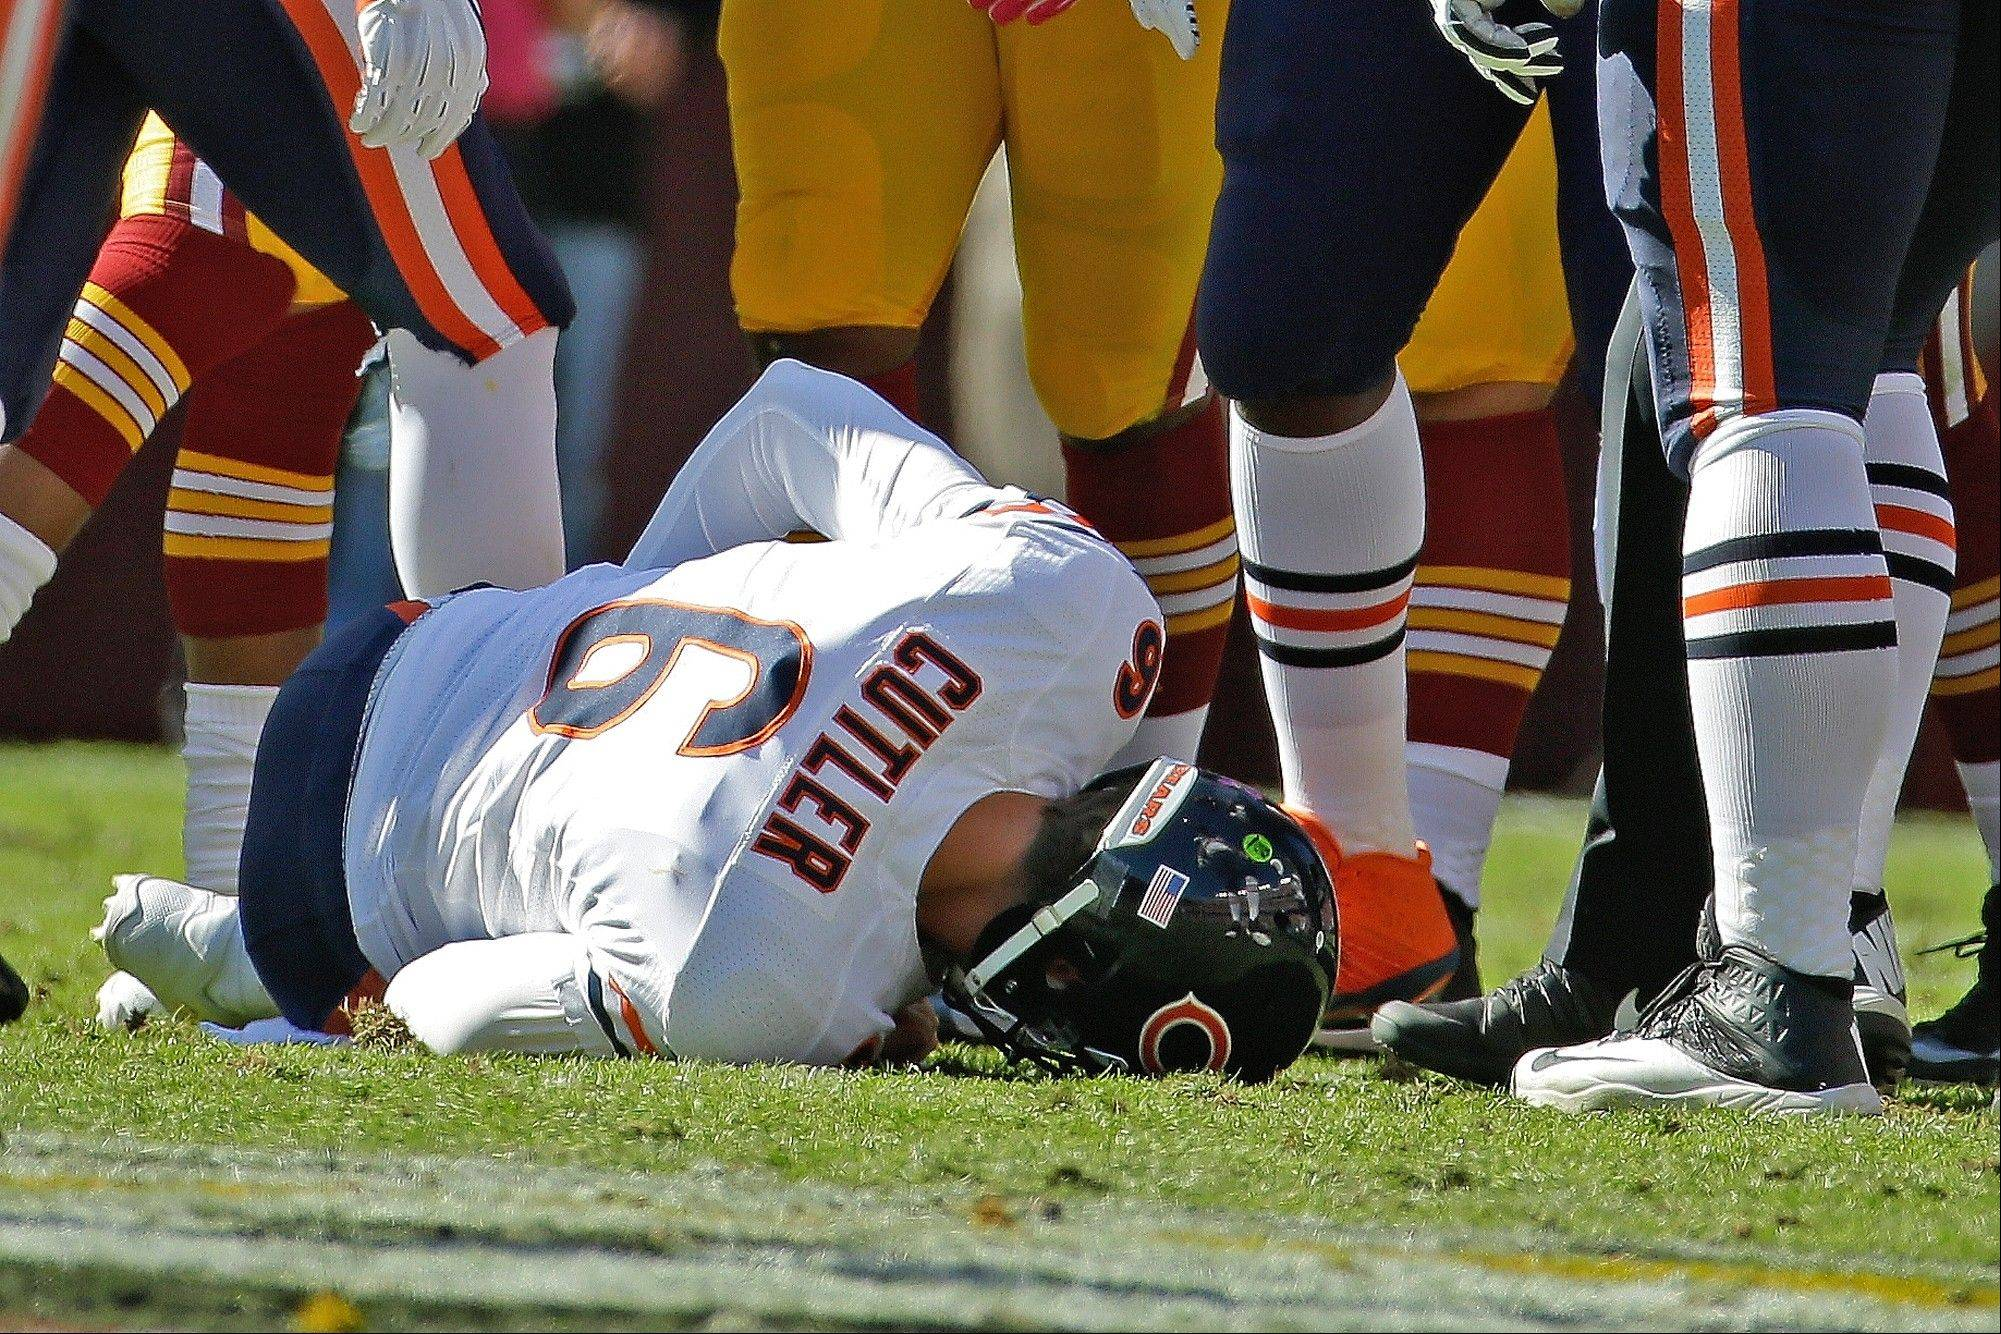 Bears quarterback Jay Cutler lies on the field after being injured on a sack by Washington Redskins defensive end Chris Baker during Sunday's game in Landover, Md.